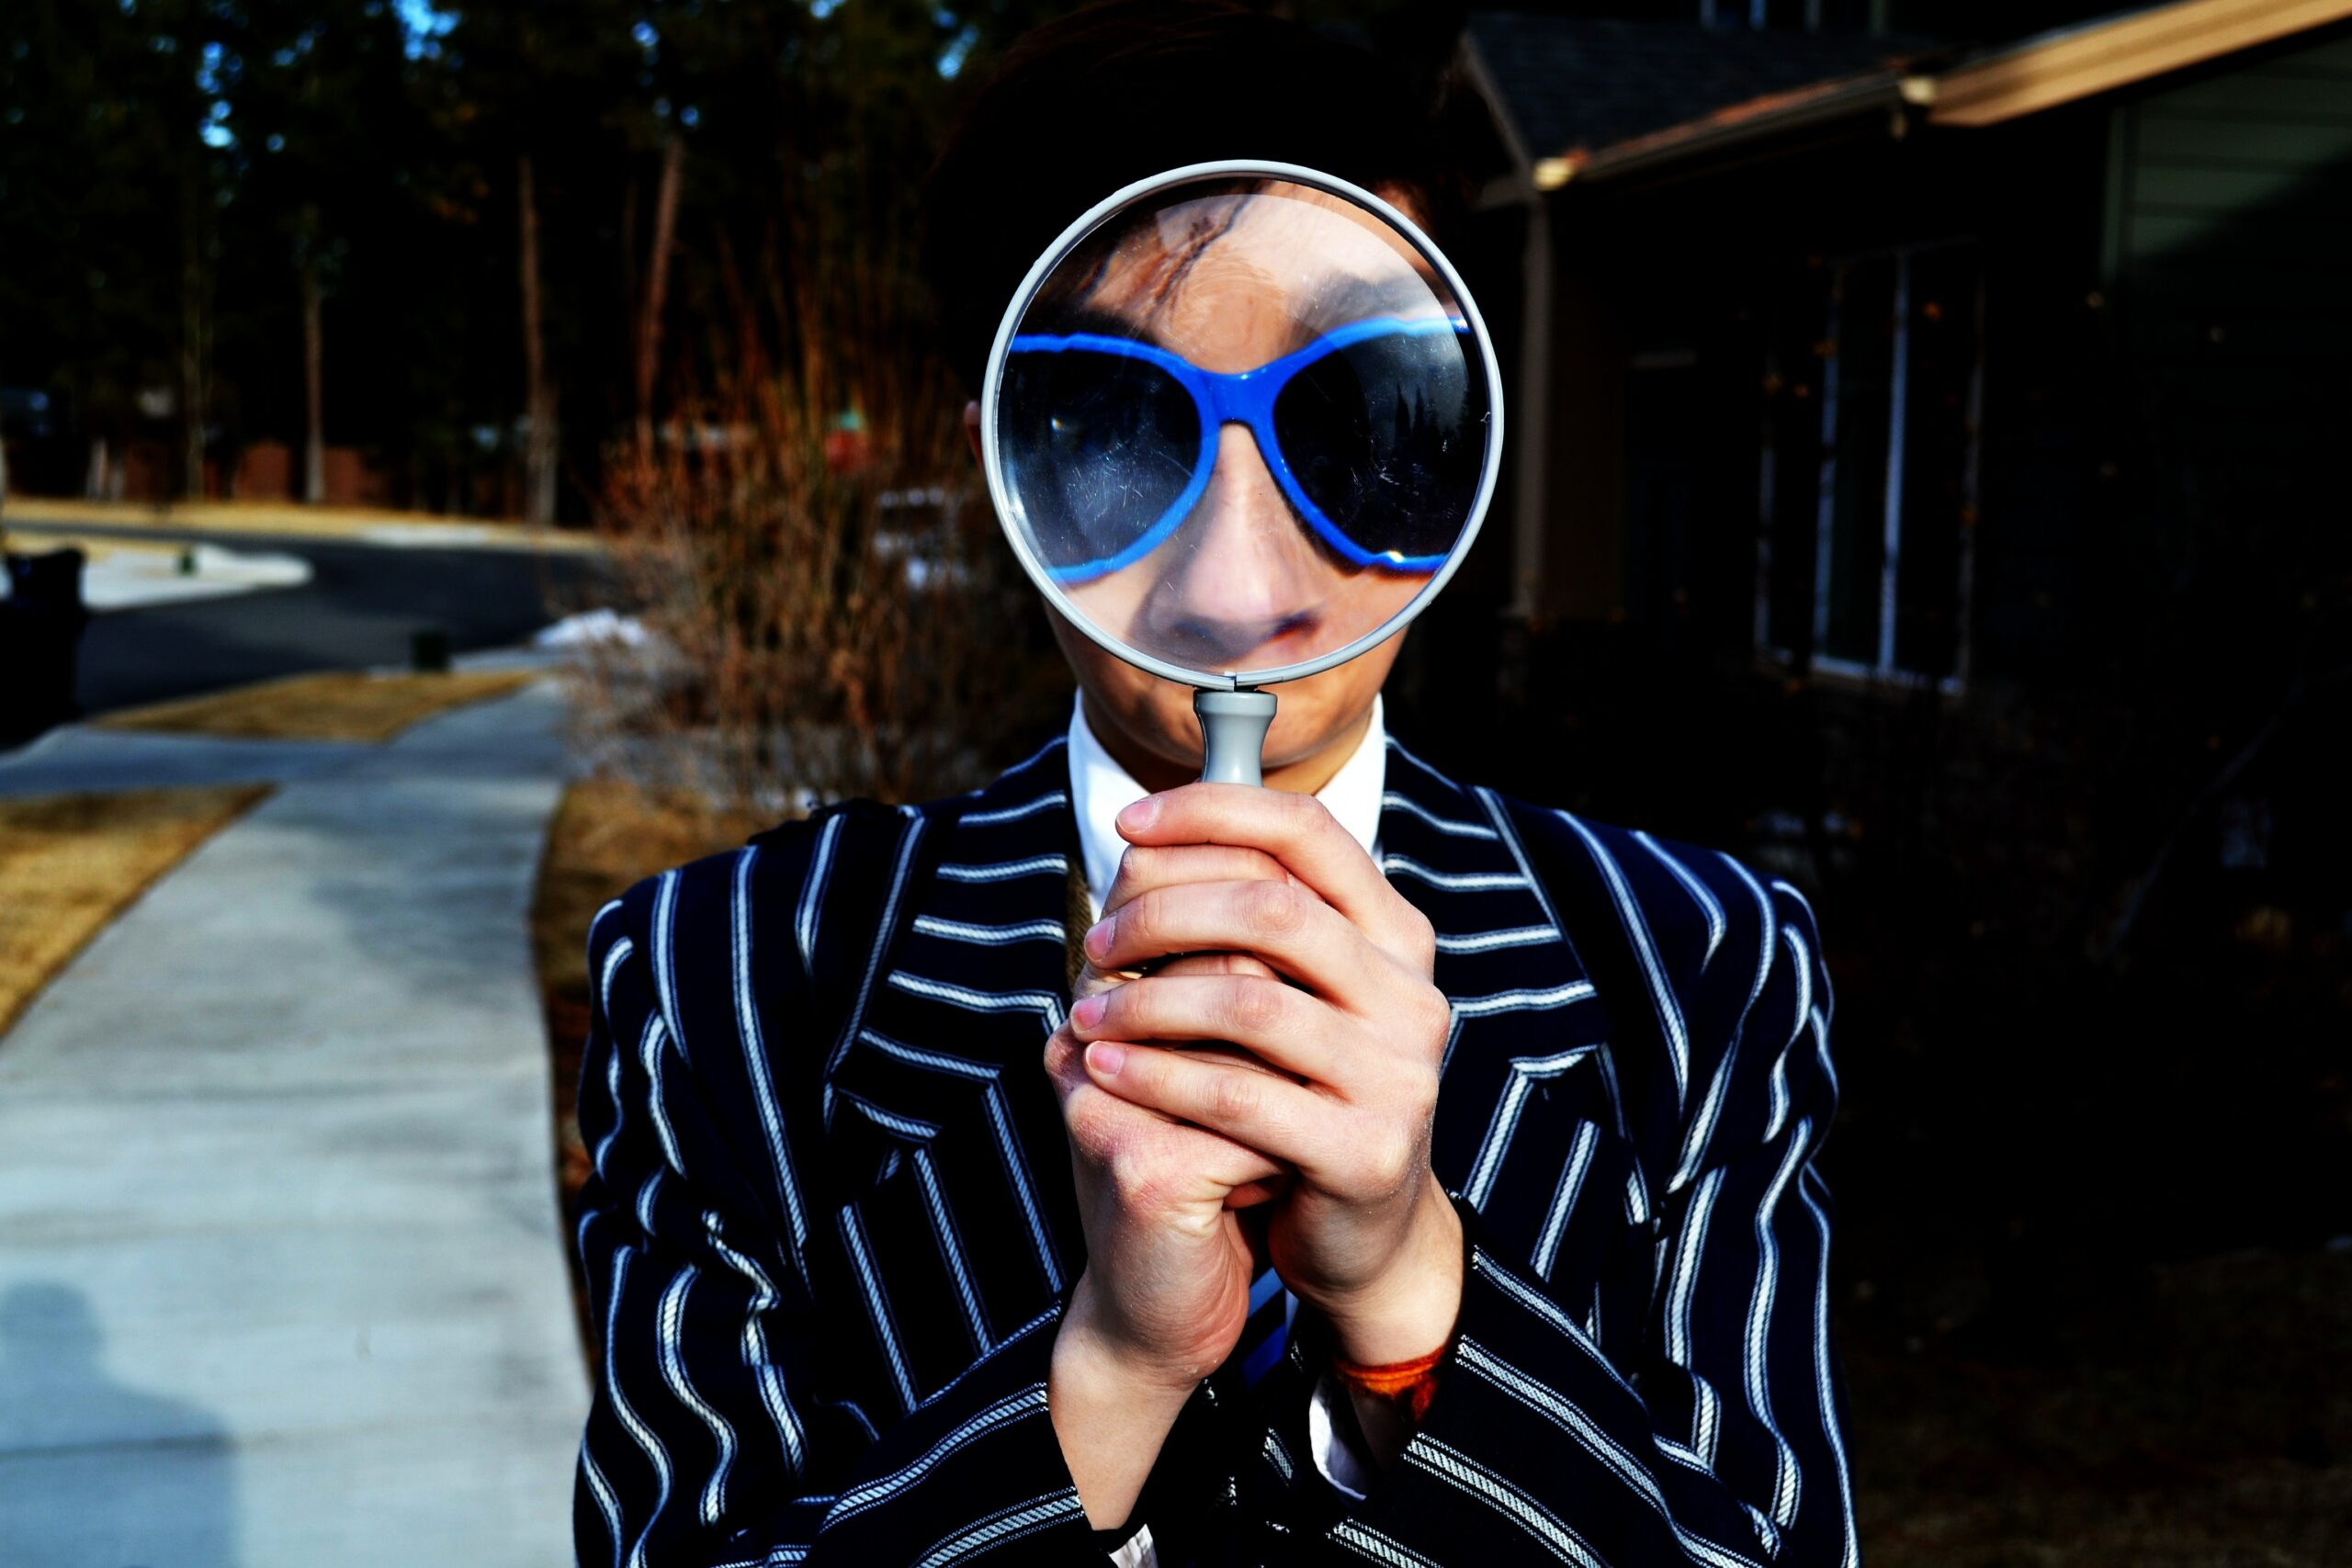 person in a suit with blue sunglasses looking through a magnifying glass